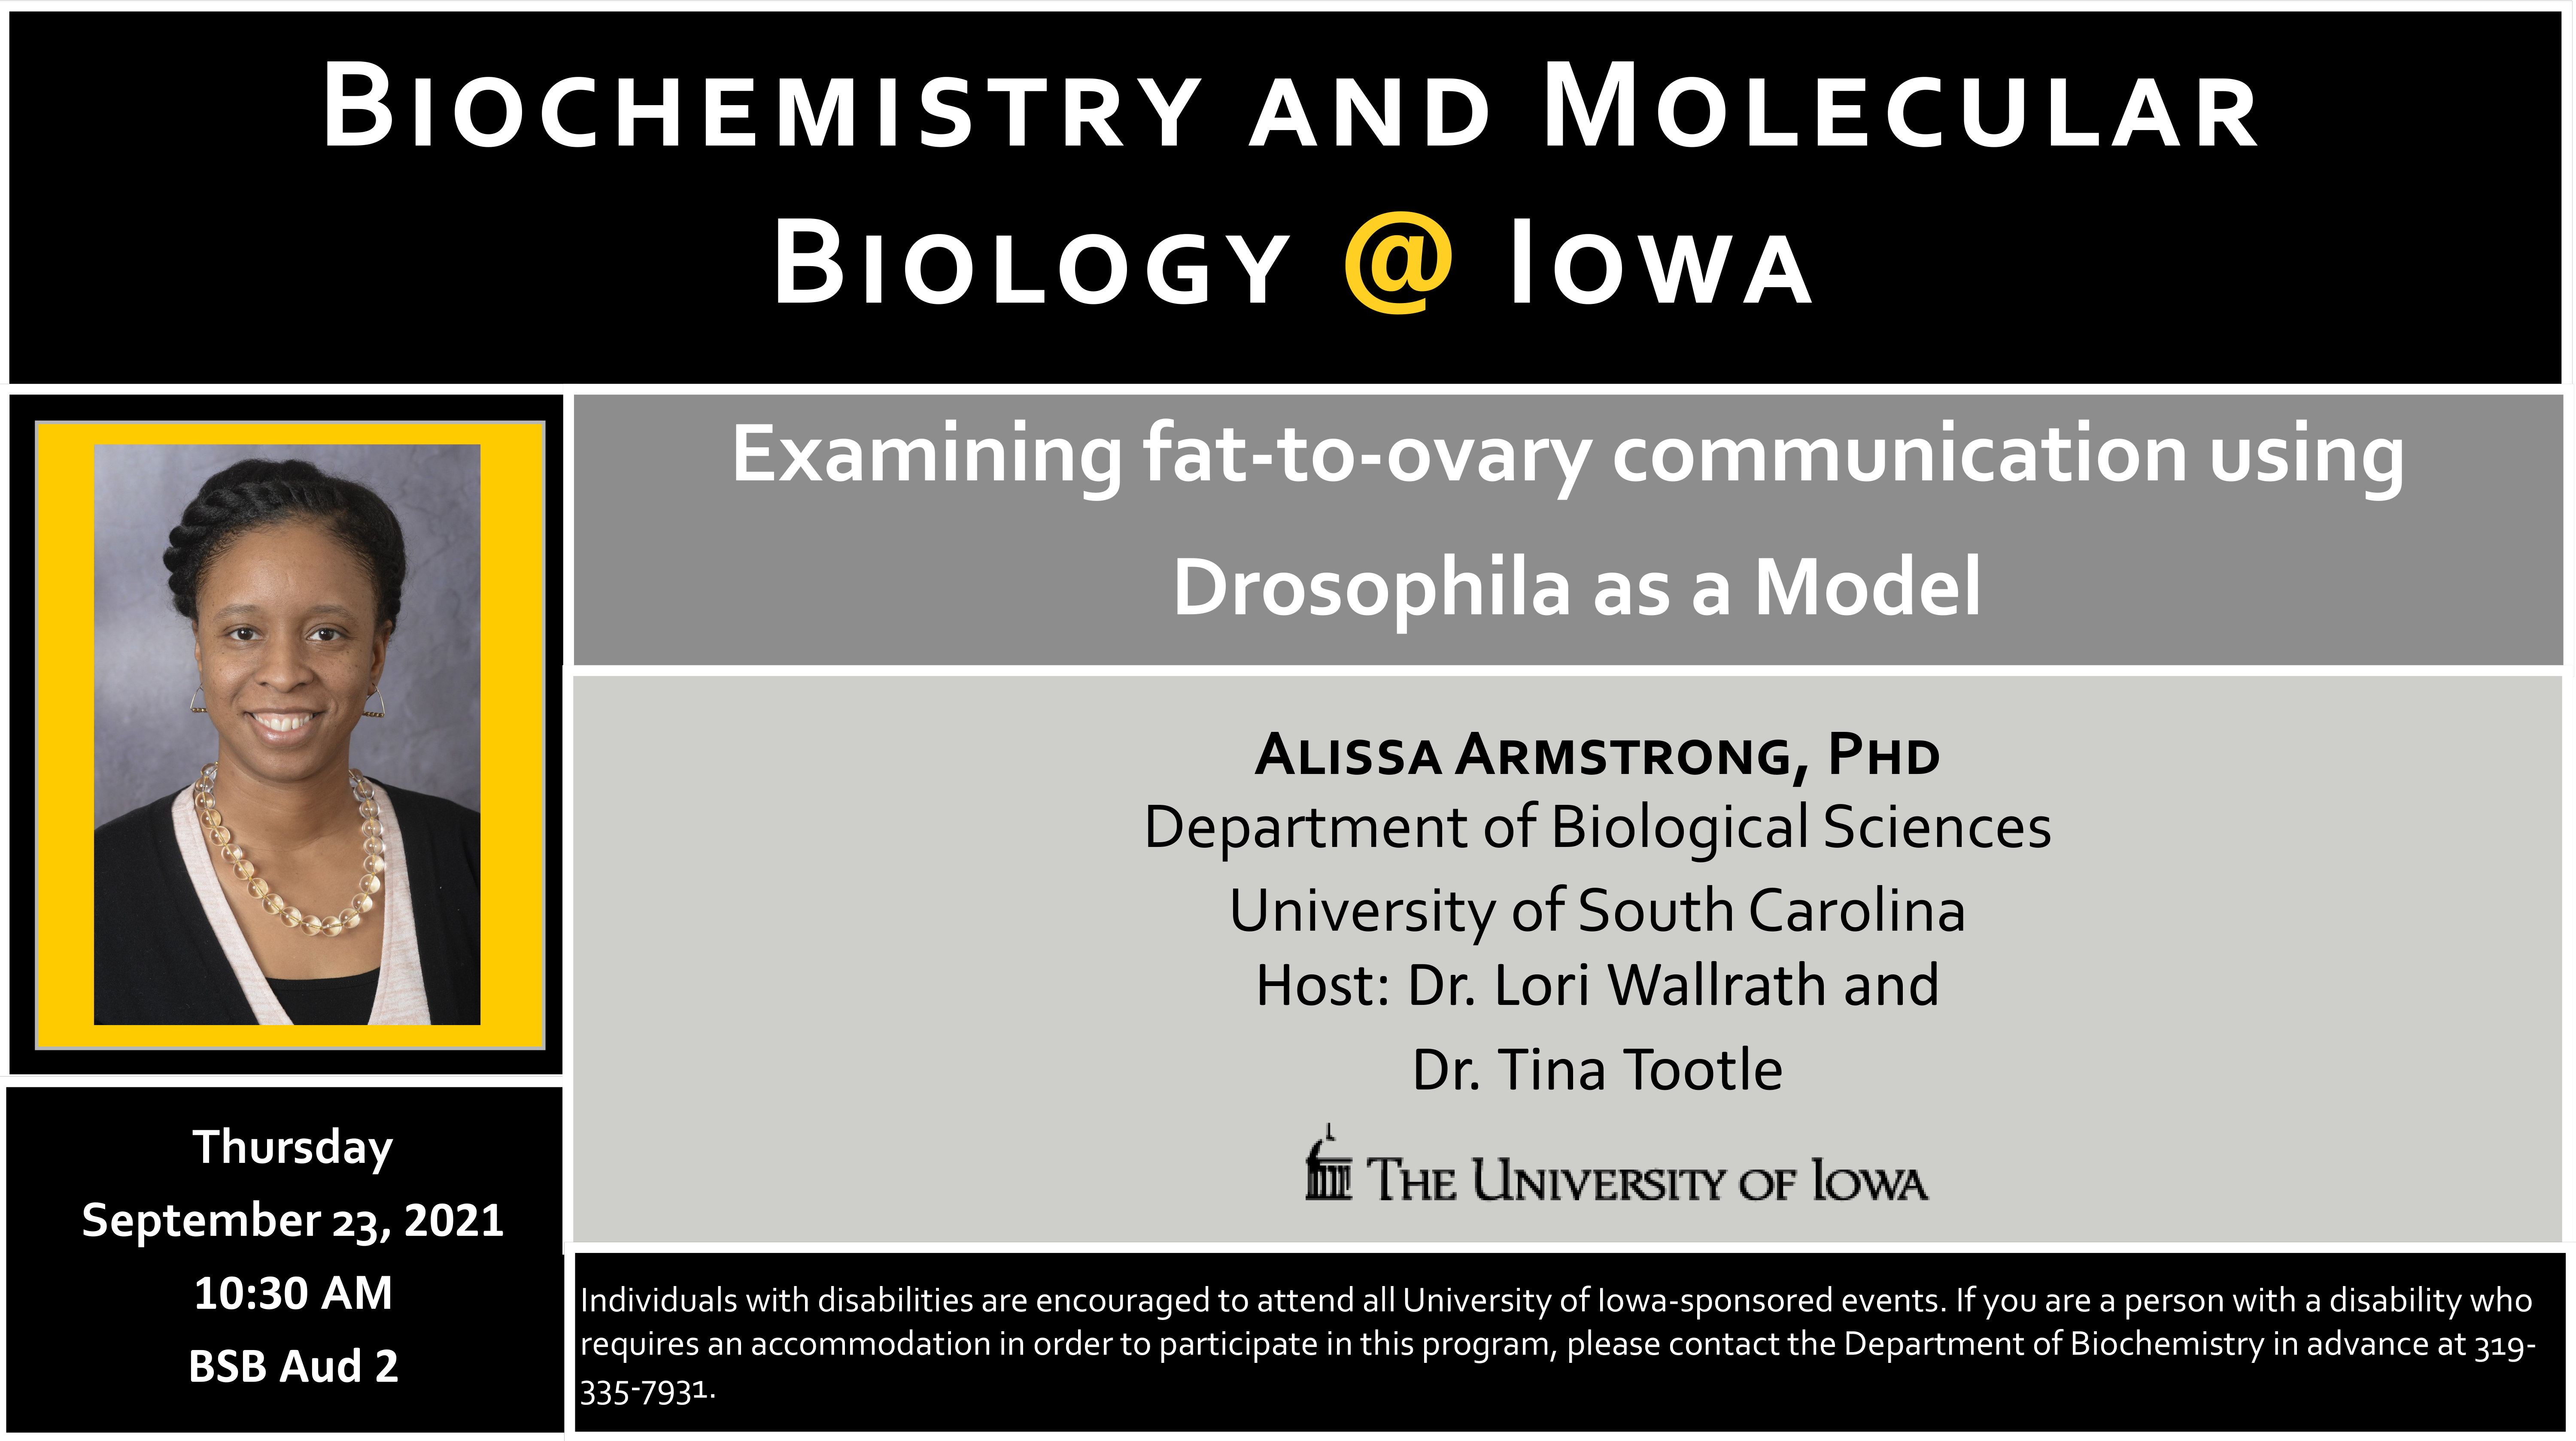 Anatomy and Cell Biology Weekly Seminar promotional image